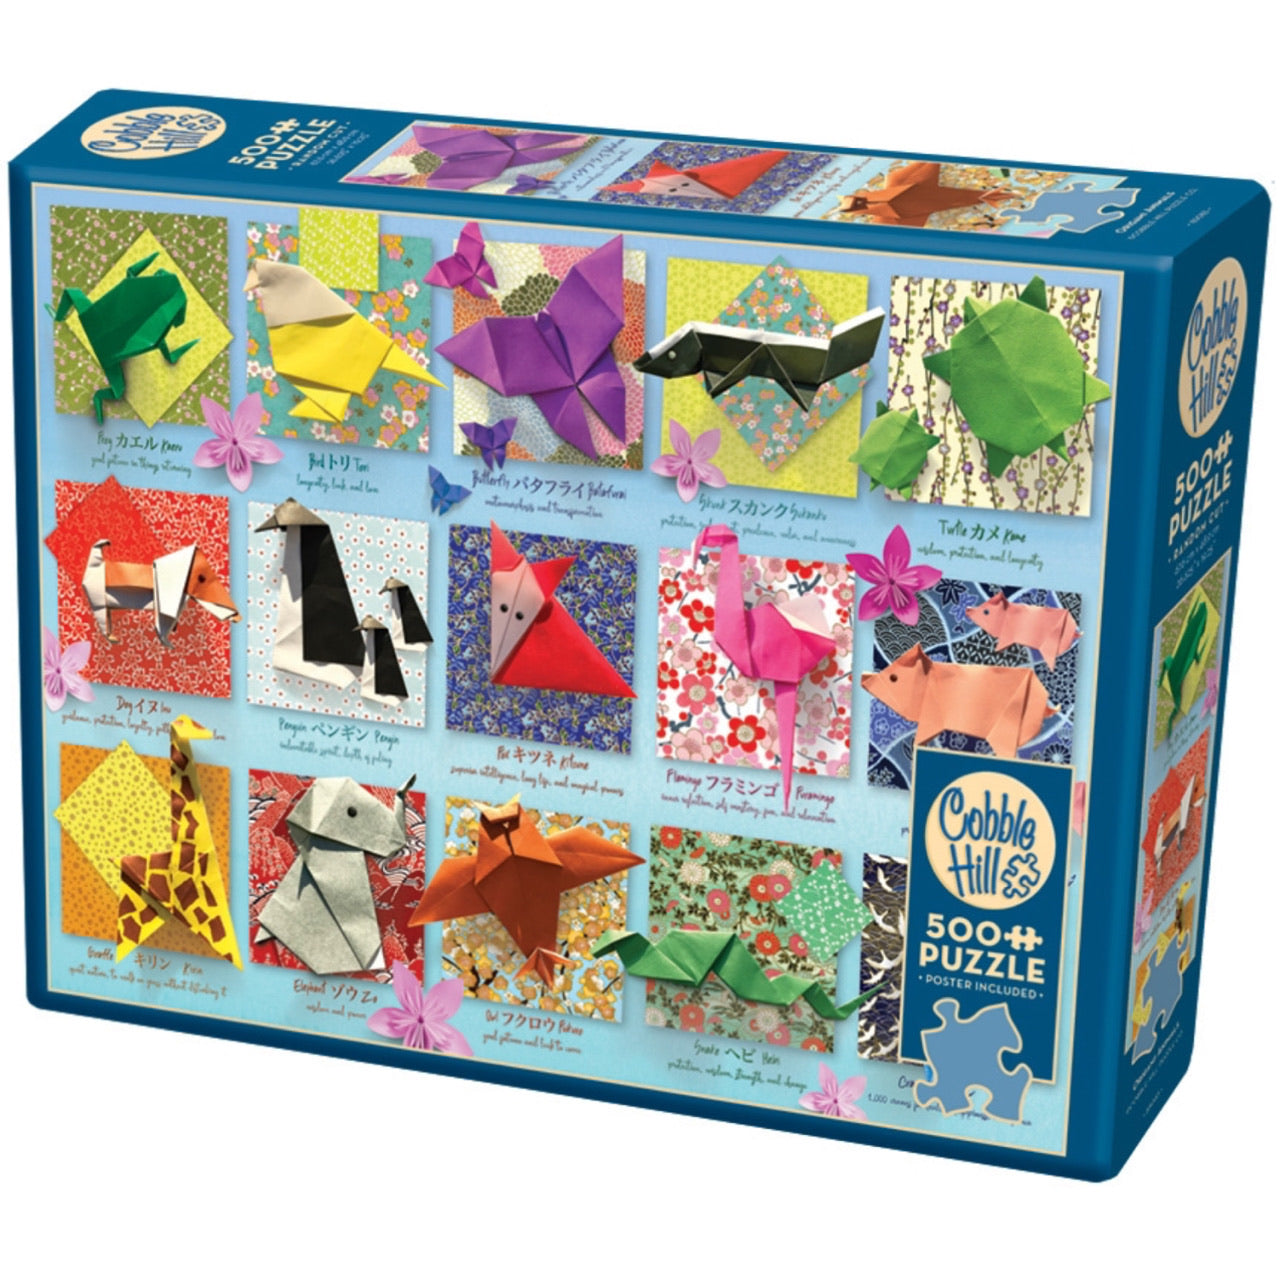 Origami Animals 500 Piece Puzzle